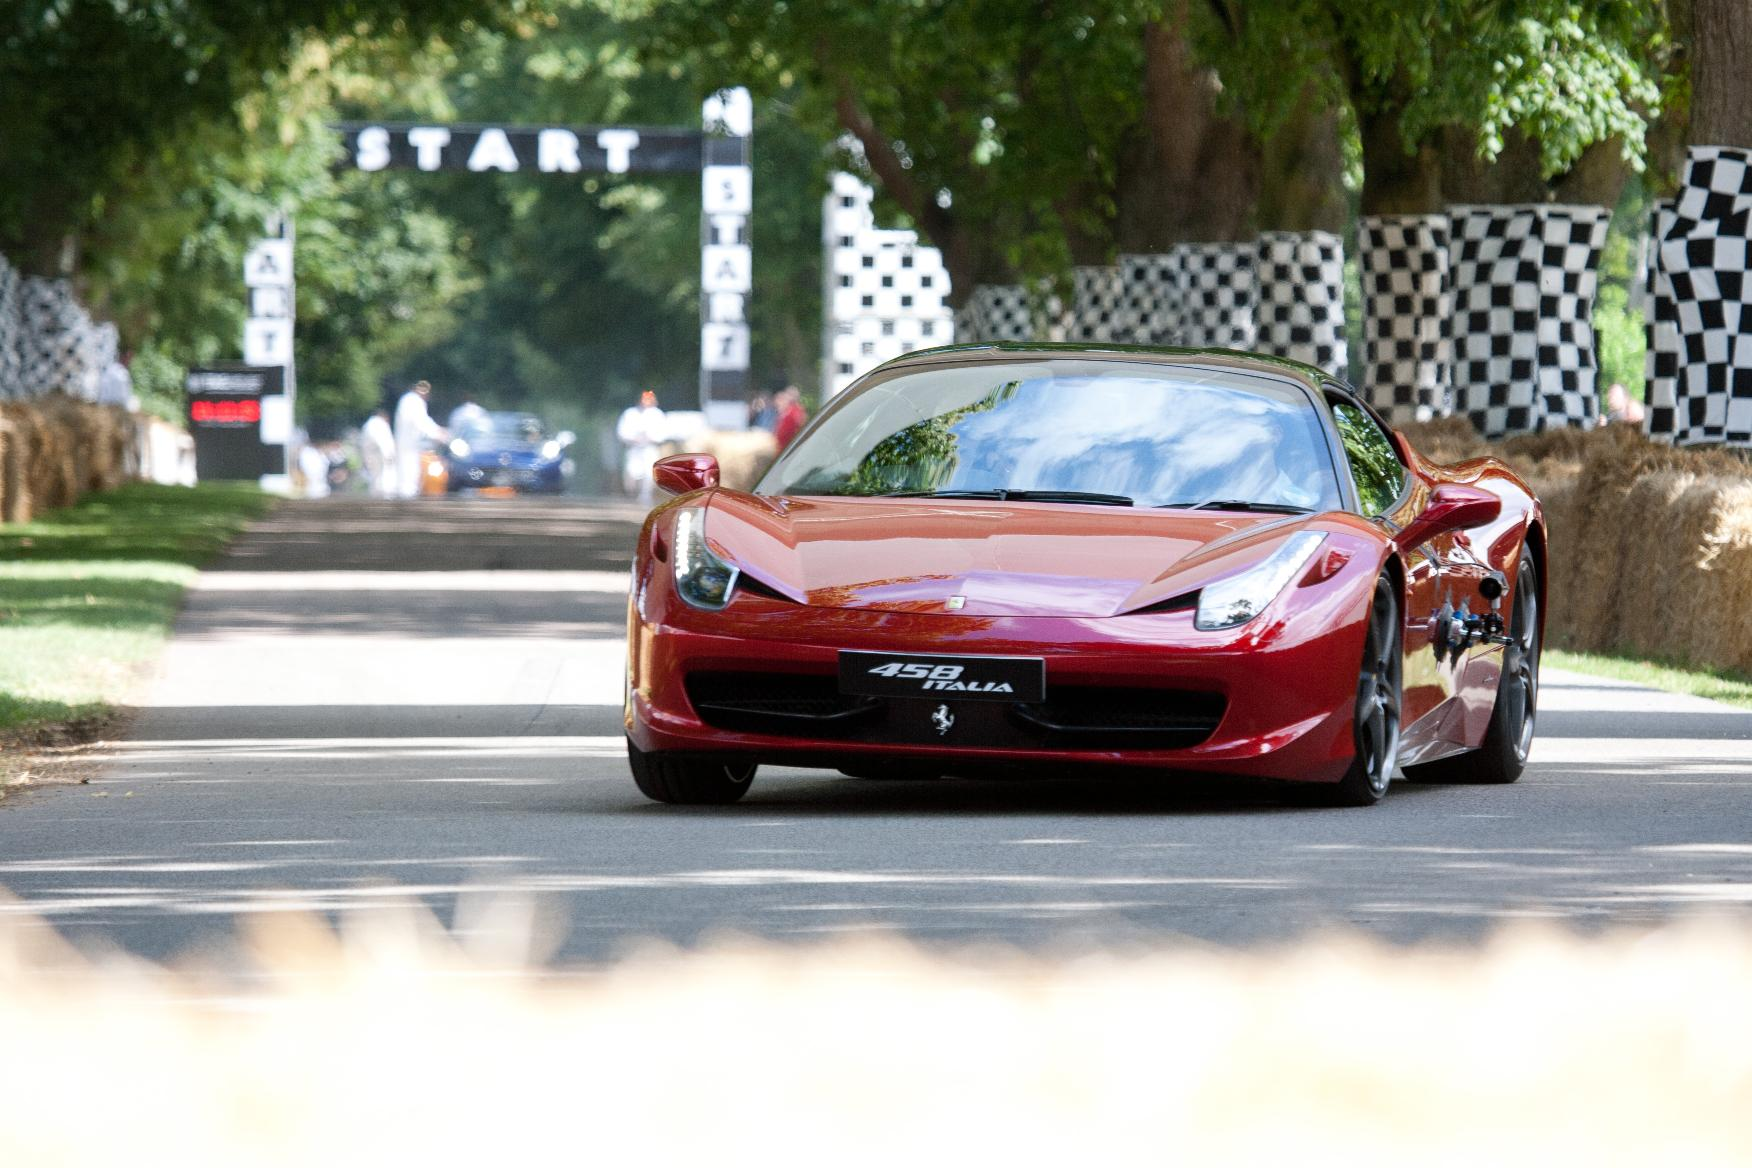 http://newmotoring.com/wp-content/uploads/2011/07/Ferrari-458-Italia-Goodwood-Festival-of-Speed.jpg